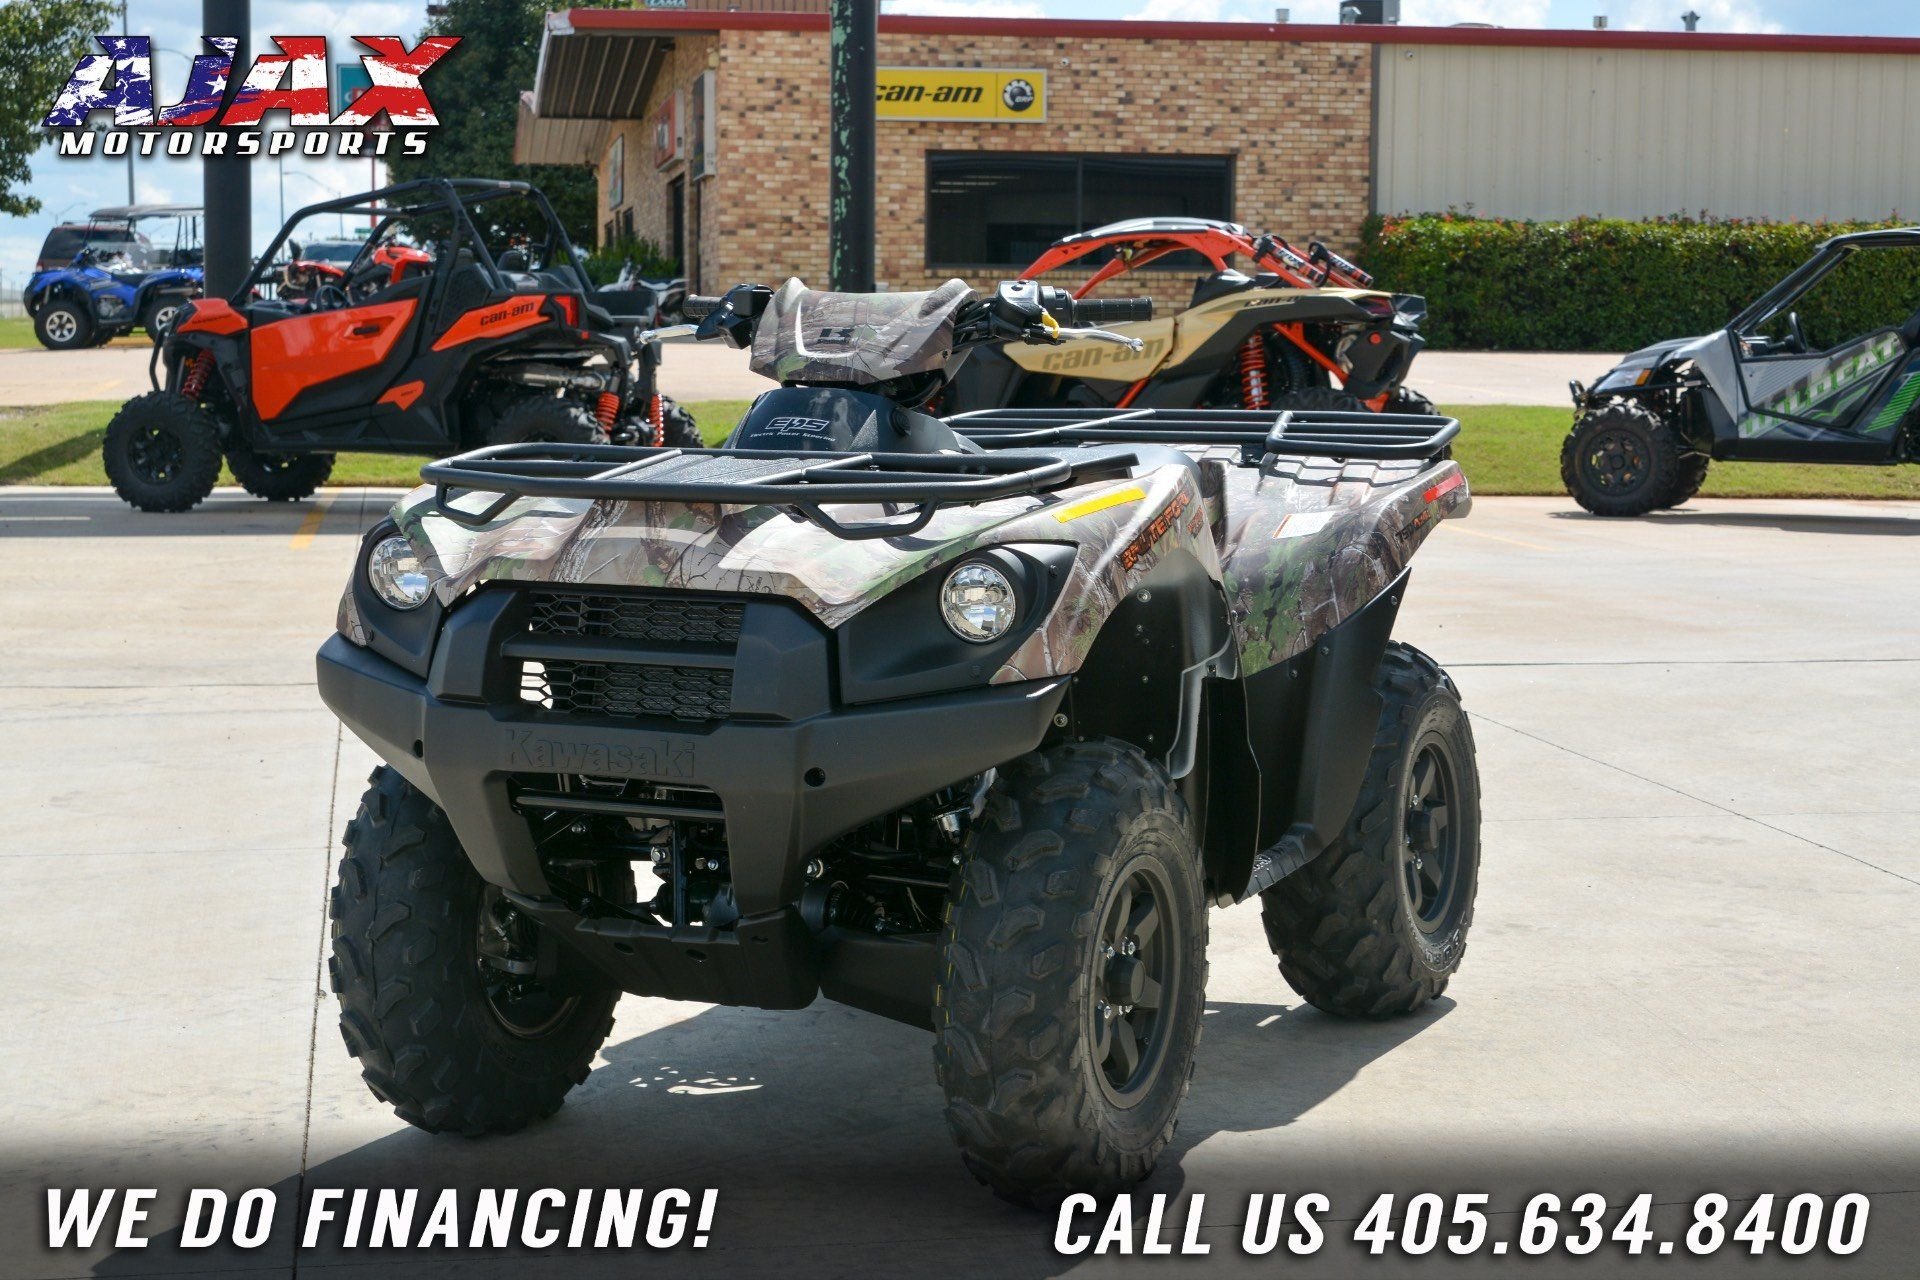 2019 Kawasaki Brute Force 750 4x4i EPS Camo in Oklahoma City, Oklahoma - Photo 7